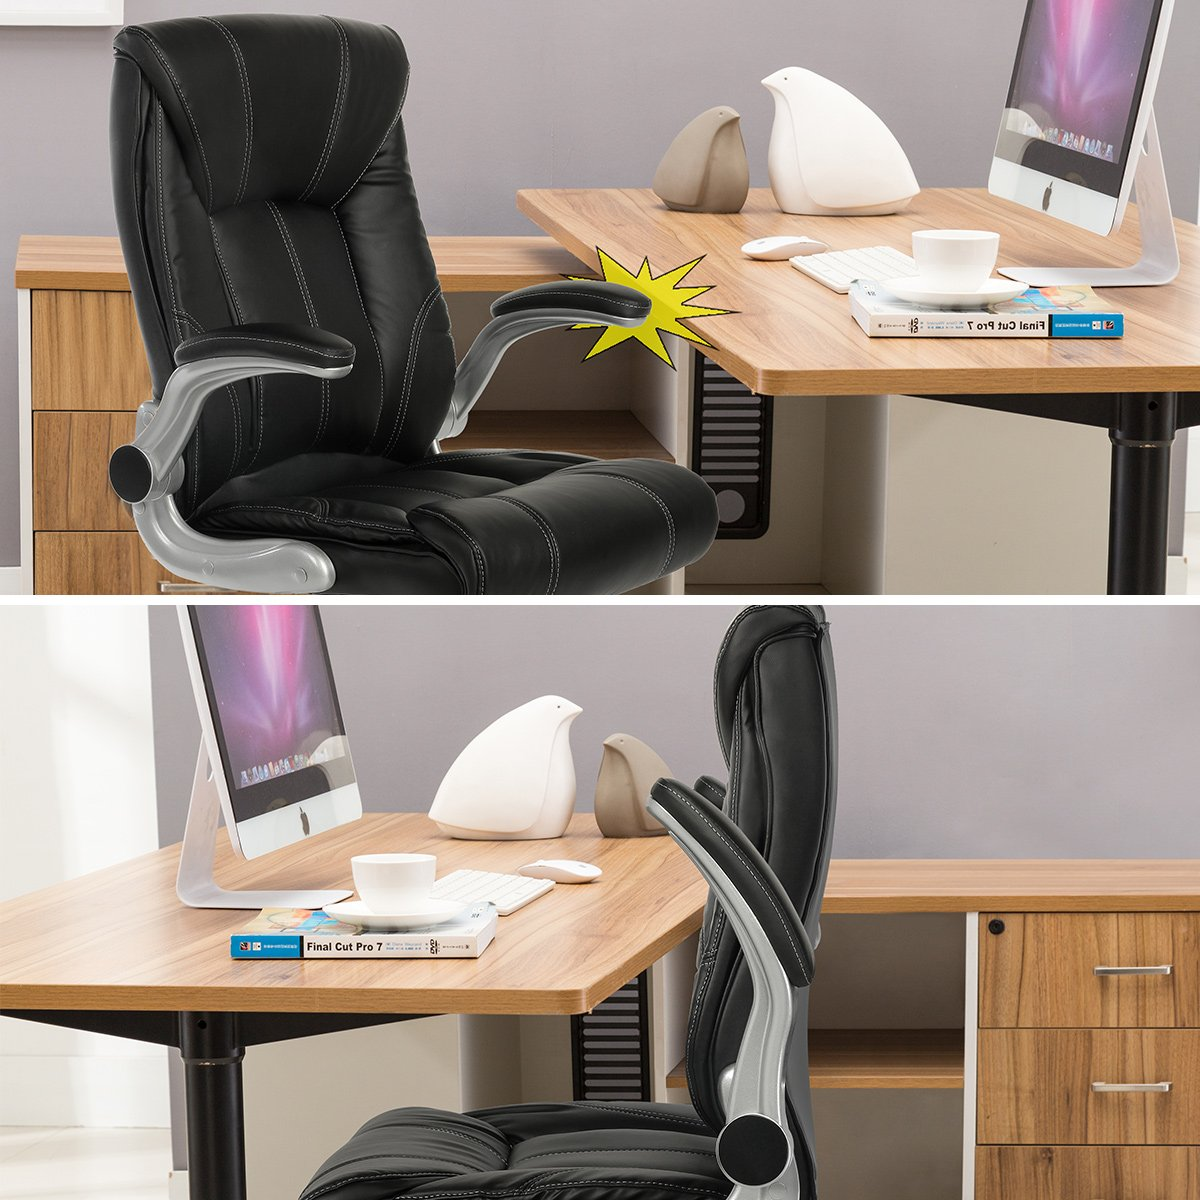 YAMASORO Ergonomic High-Back Executive Office Chair PU Leather Computer Desk Chair with Flip-up Arms and Back Support by YAMASORO (Image #5)